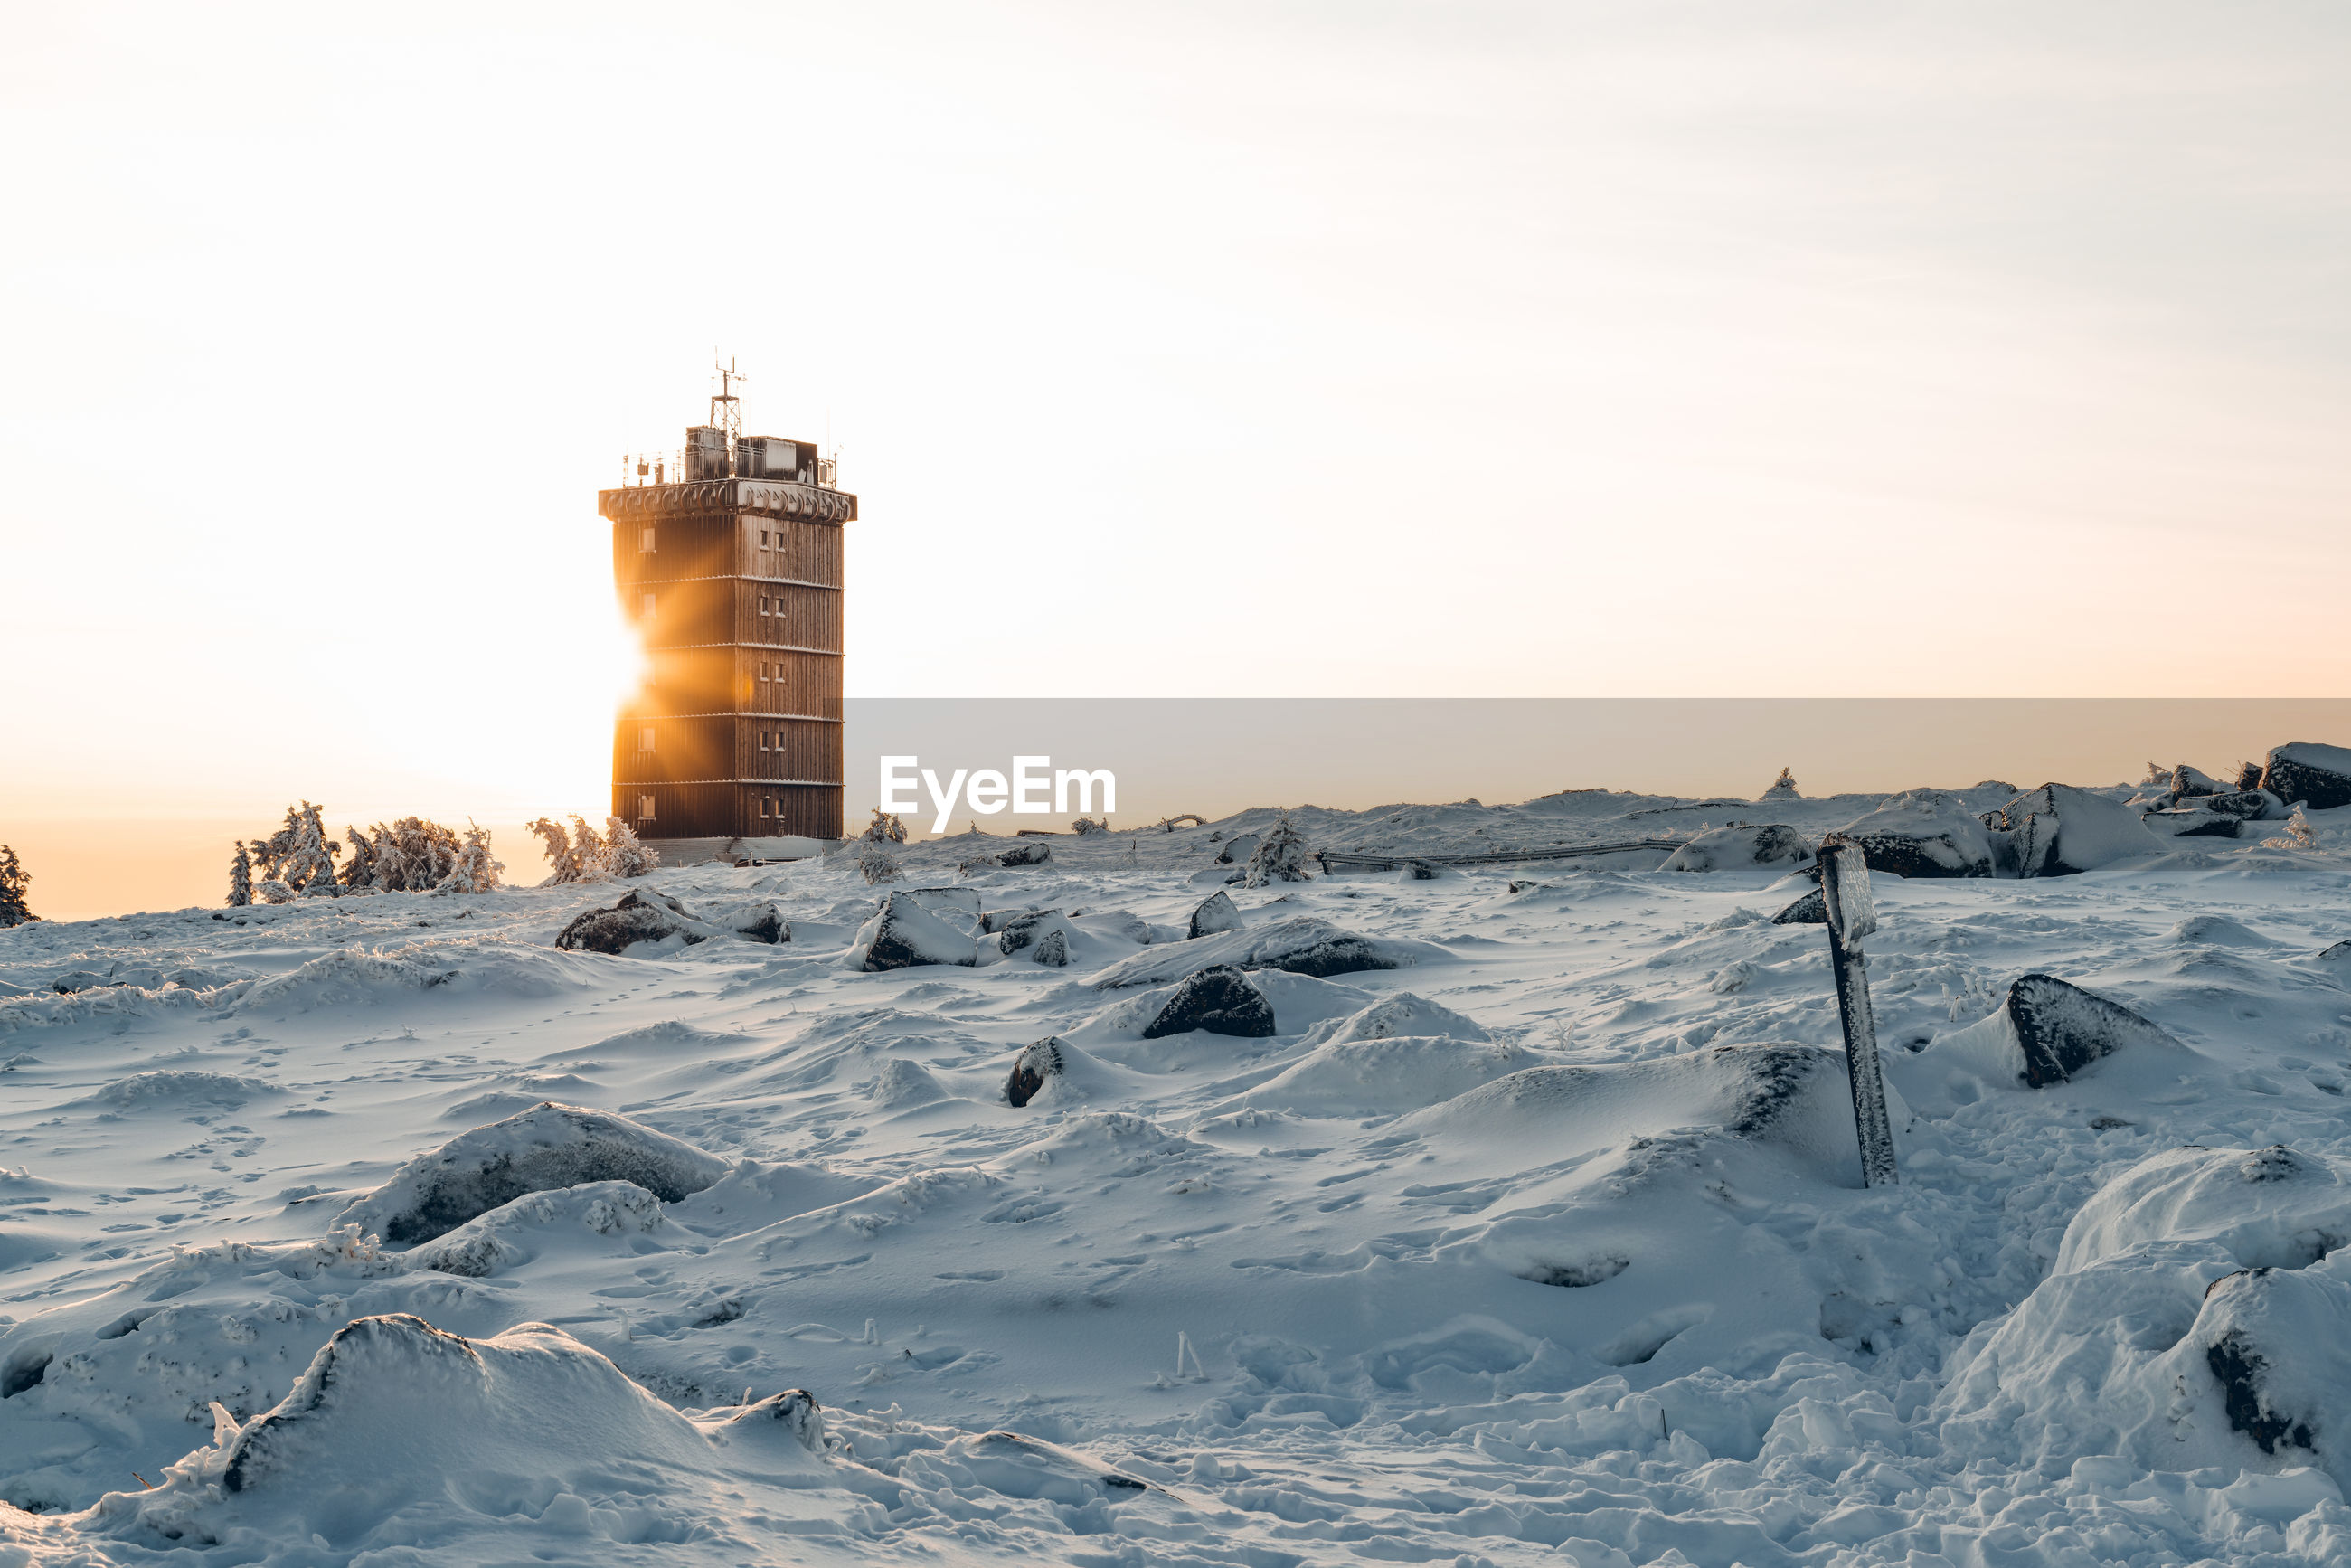 Lighthouse on snow covered building against sky during sunset